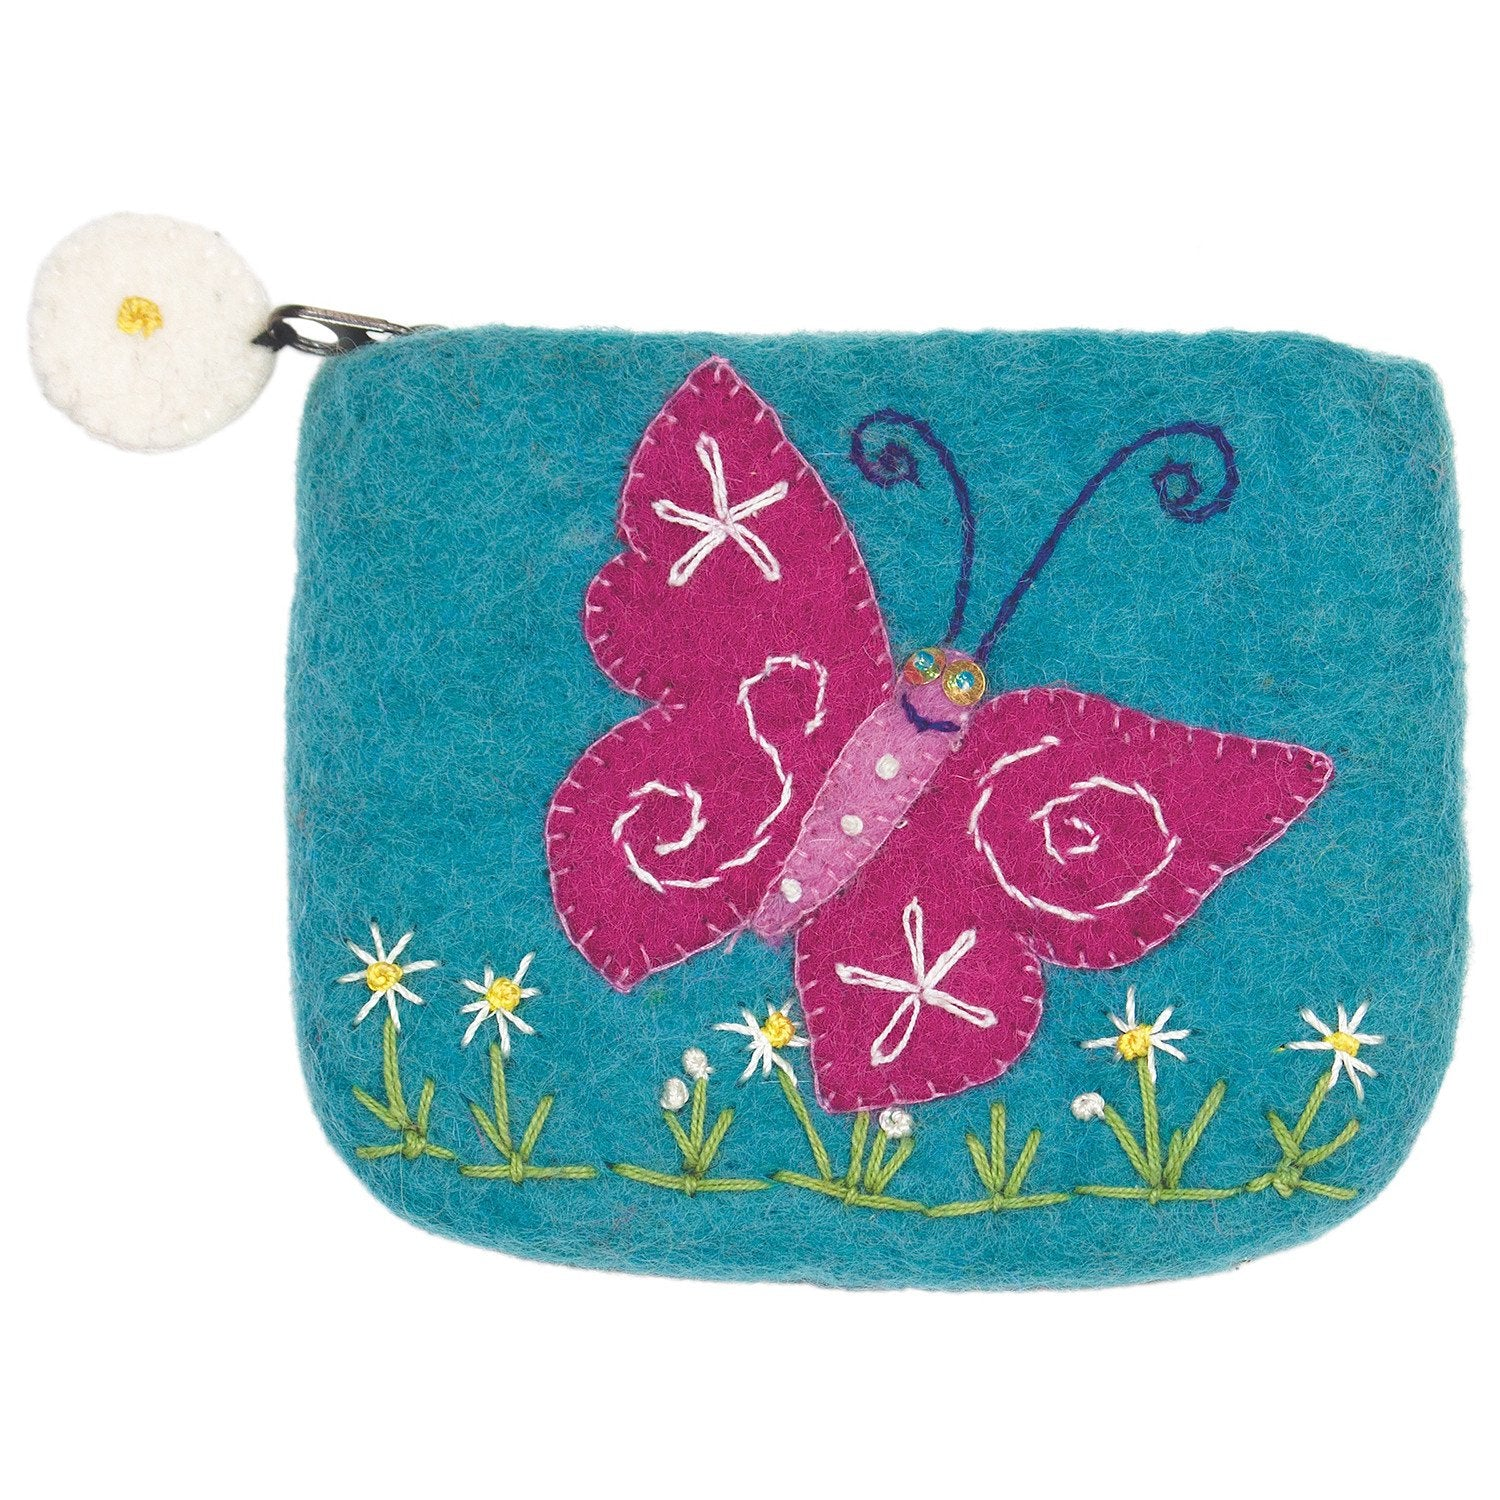 Felt Coin Purse - Magical Butterfly